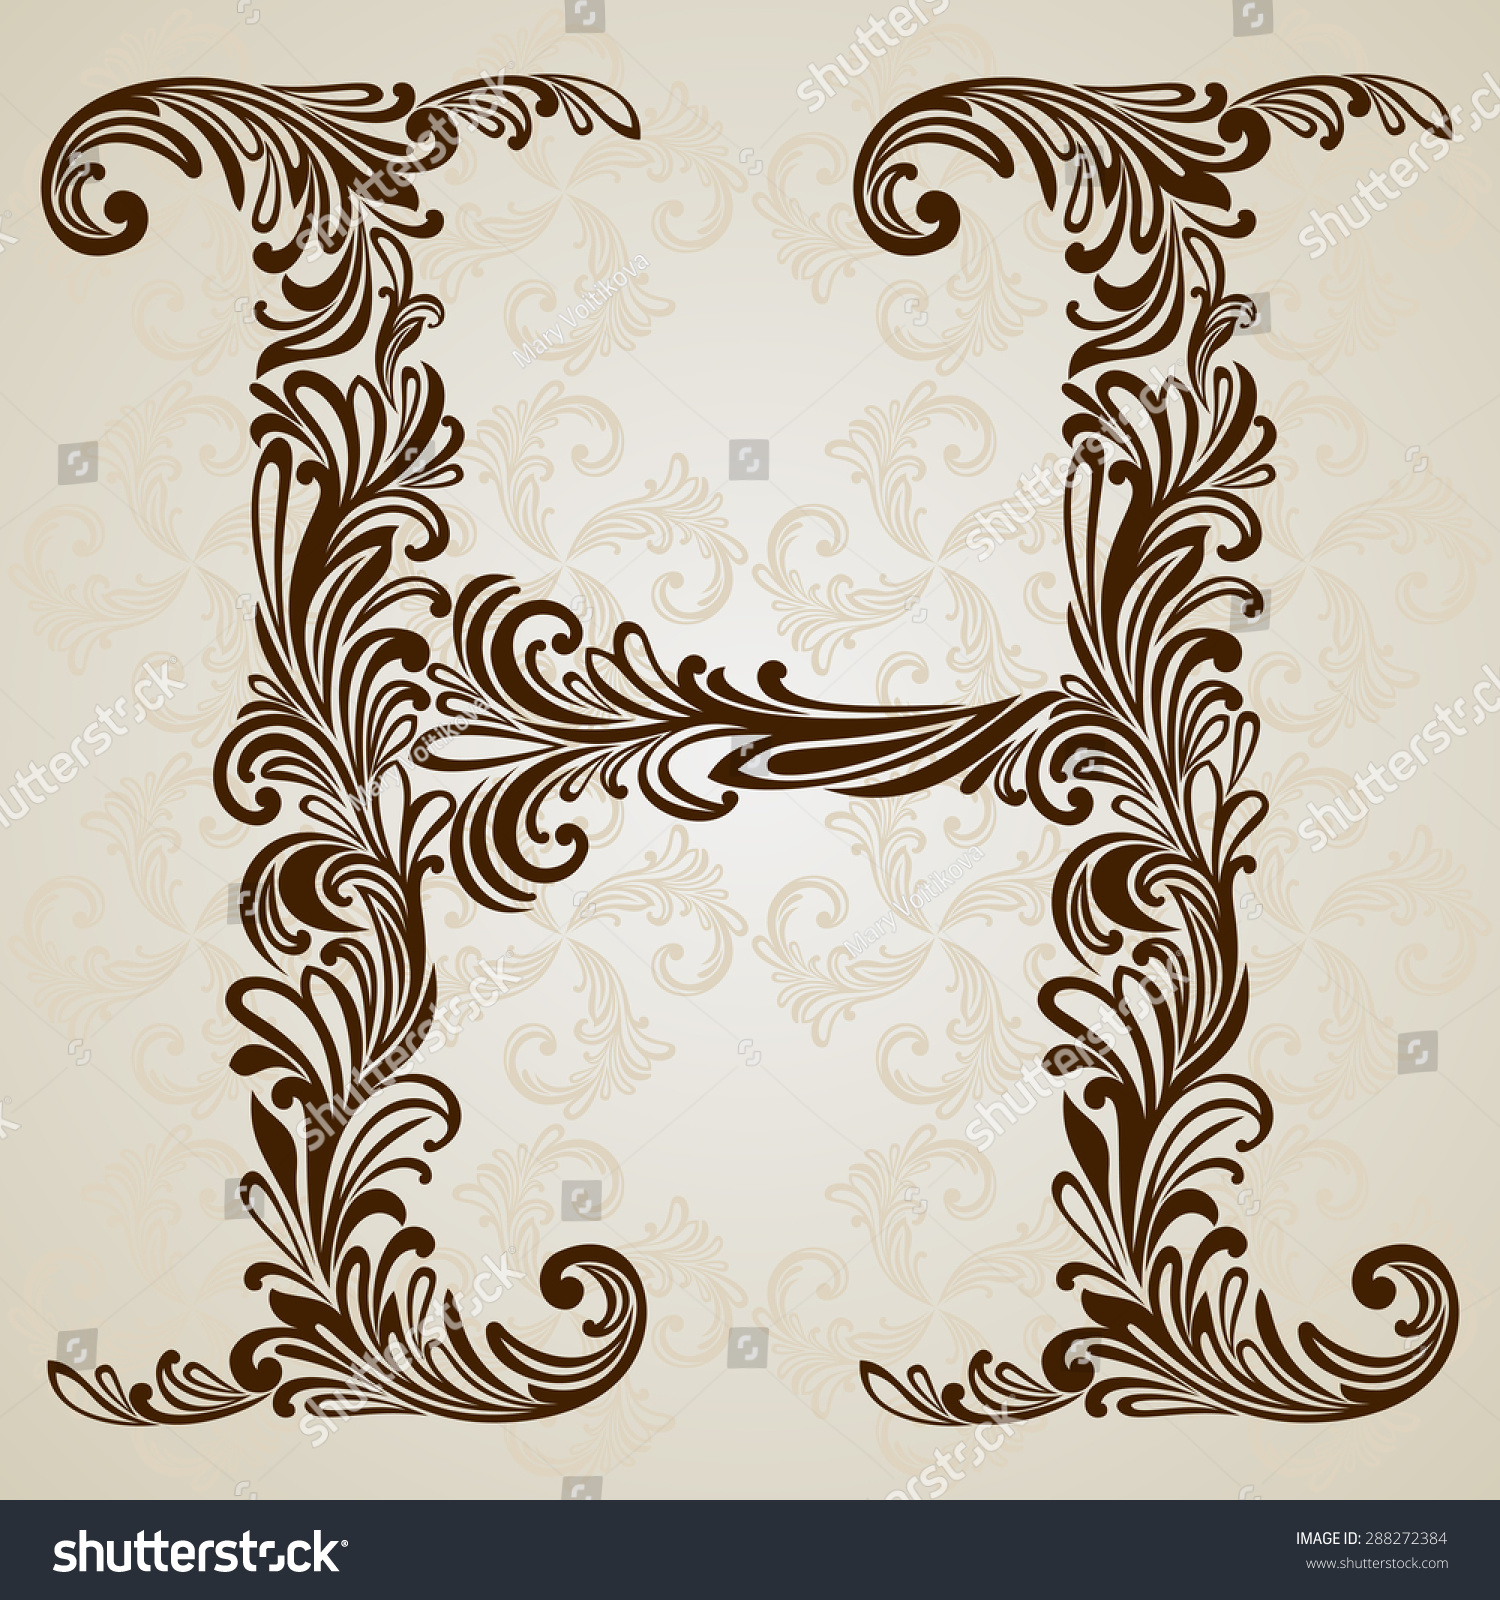 Calligraphic font vintage initials letter h vector design background